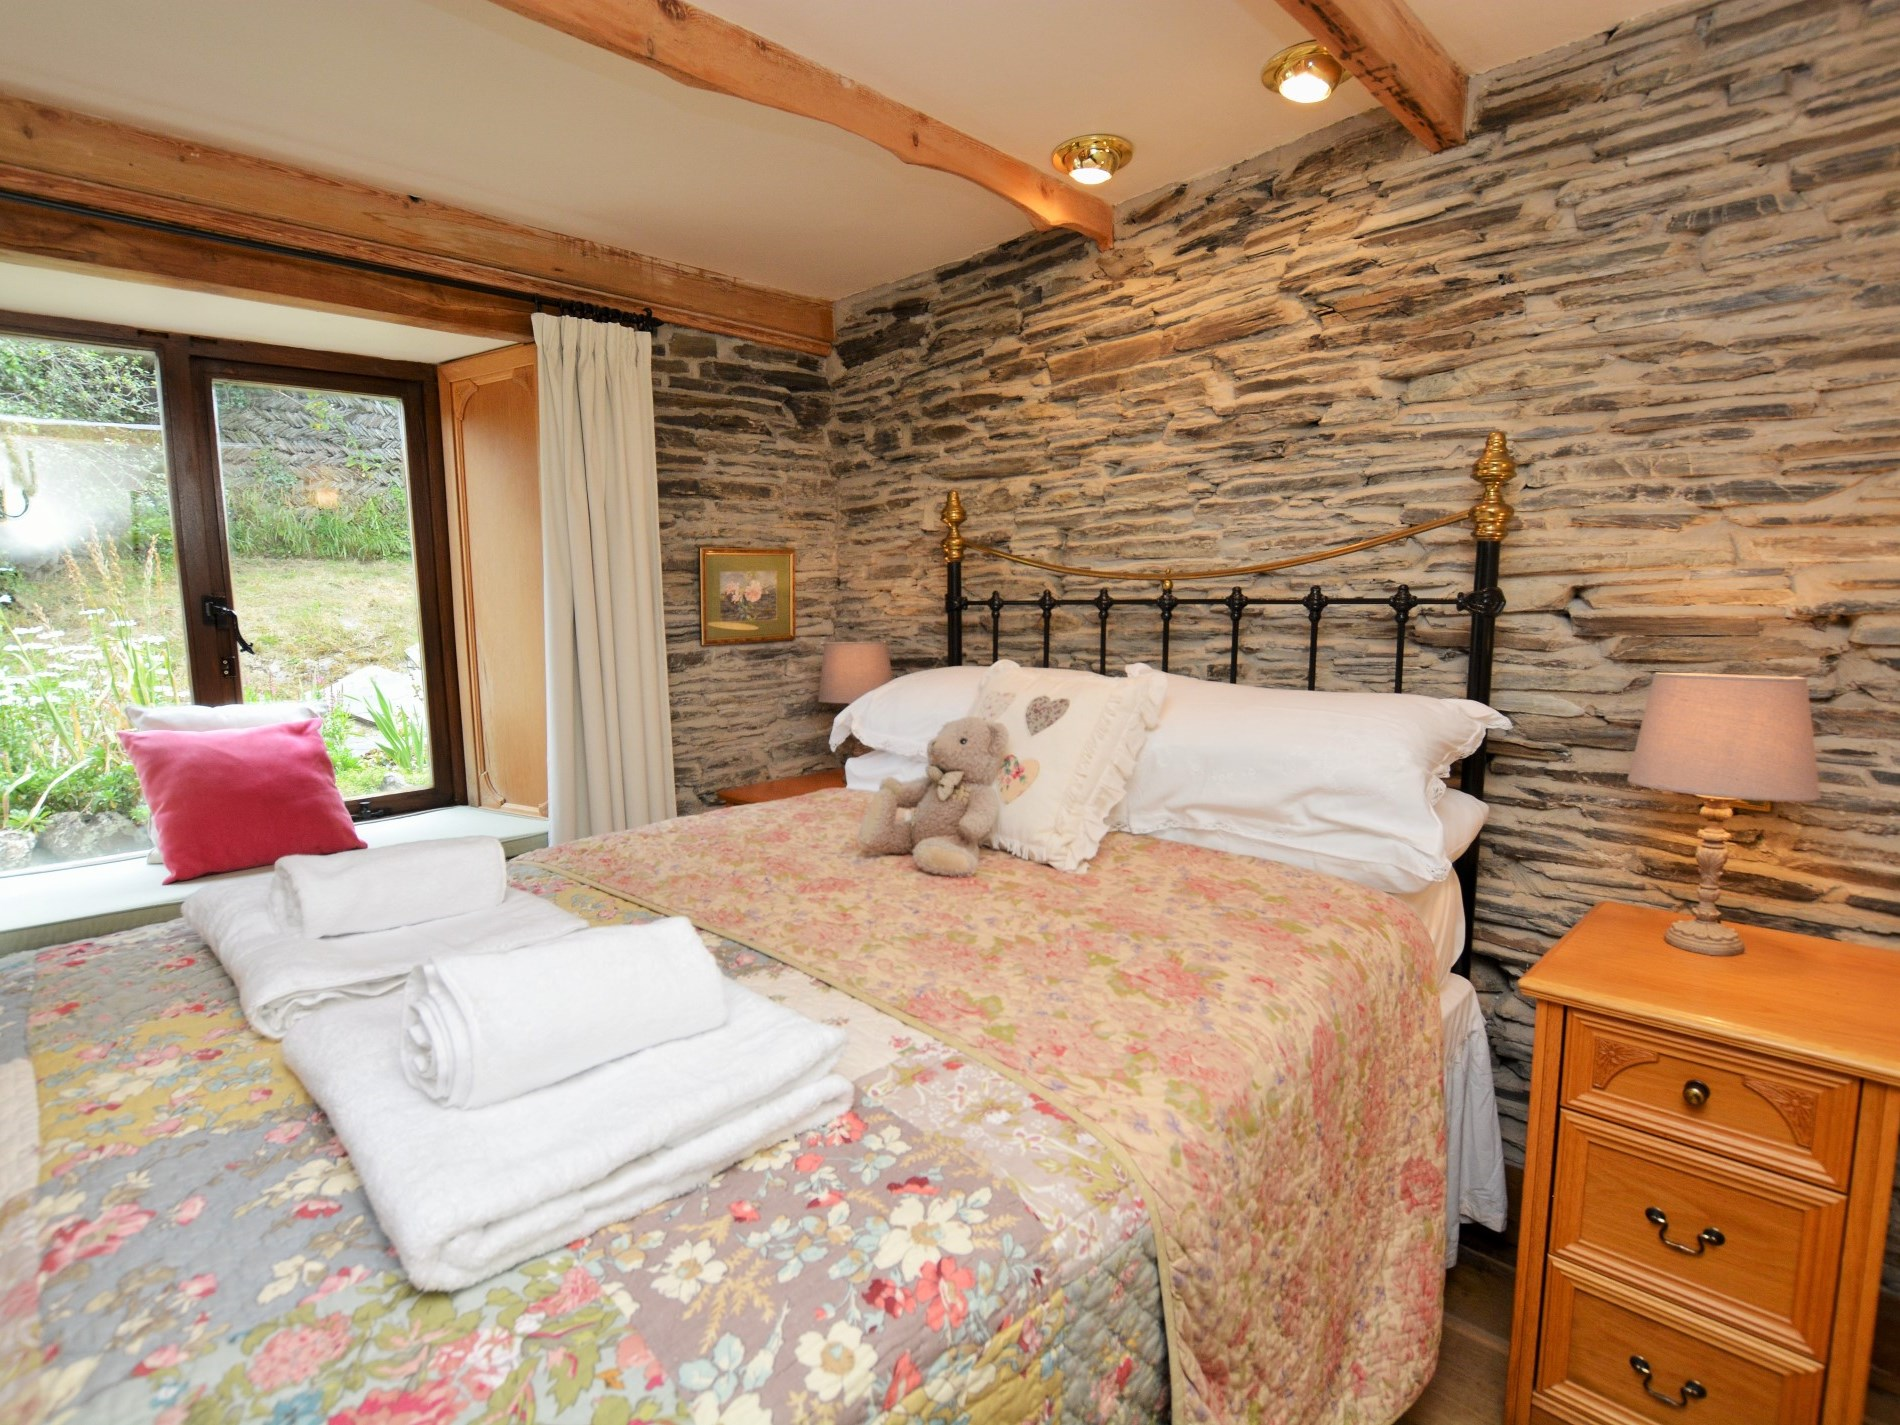 3 Bedroom Cottage in Padstow, Cornwall